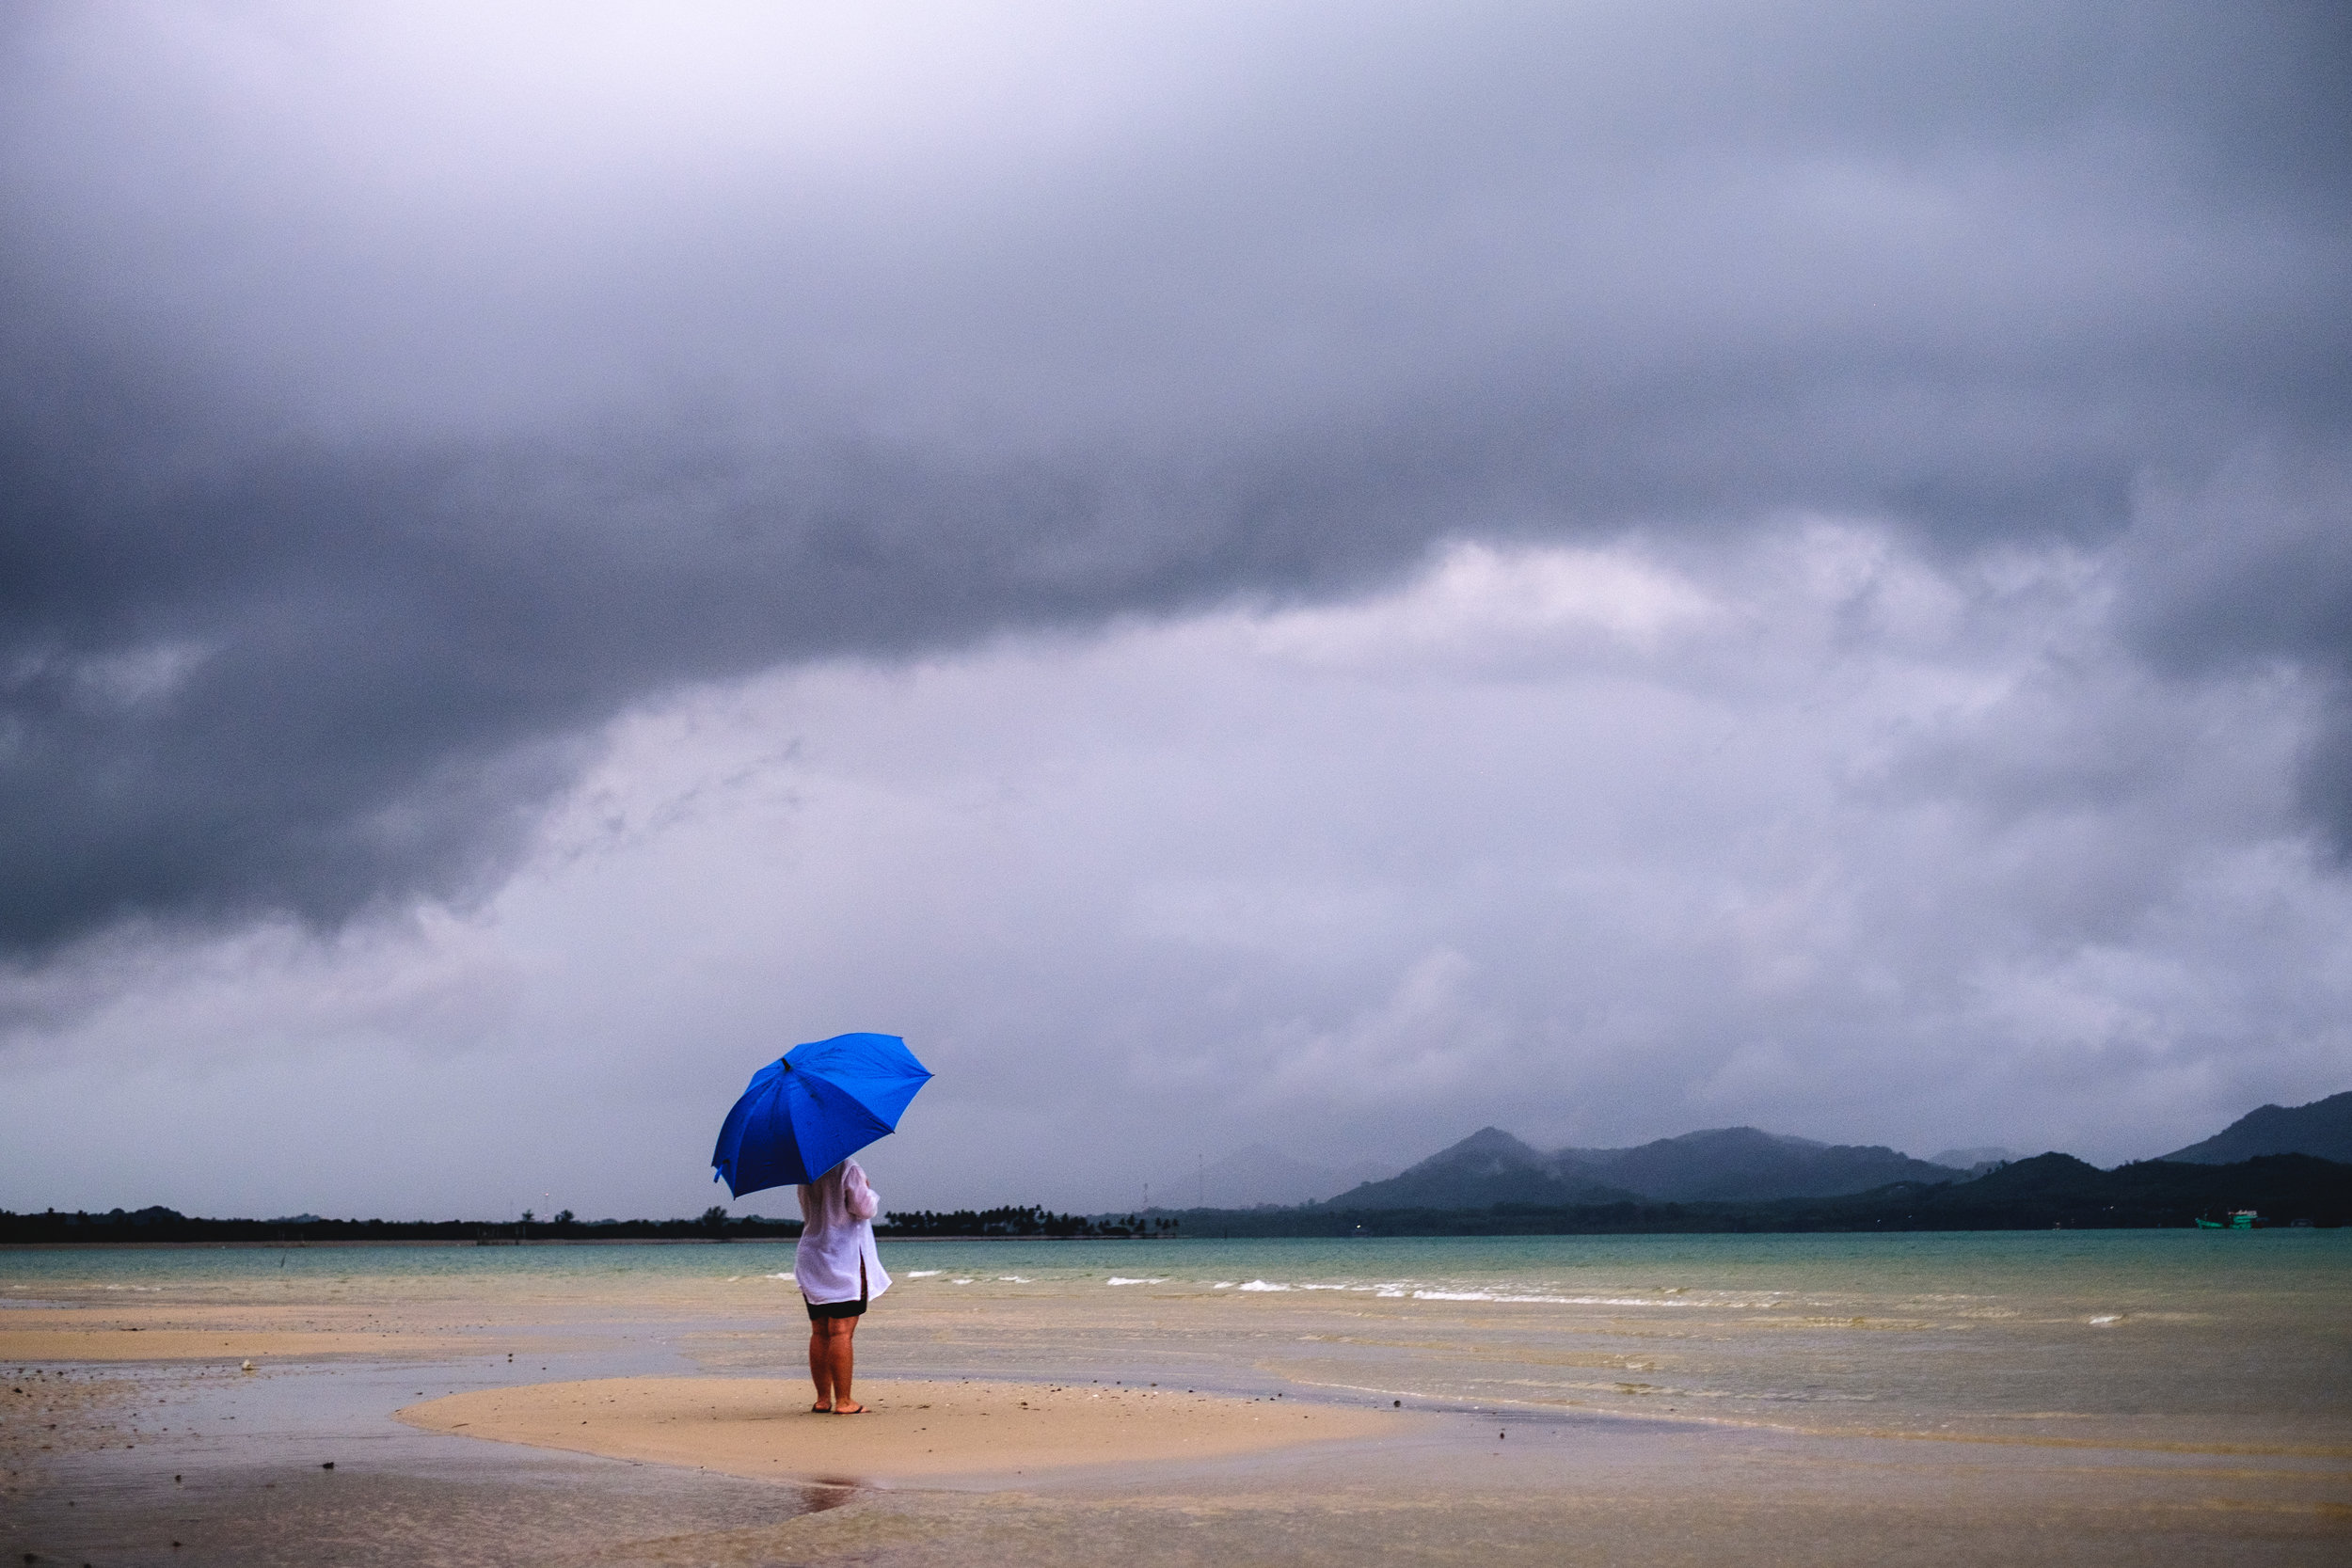 Di watching a thunderstorm roll in on the beach at Koh Yao Yai in Thailand